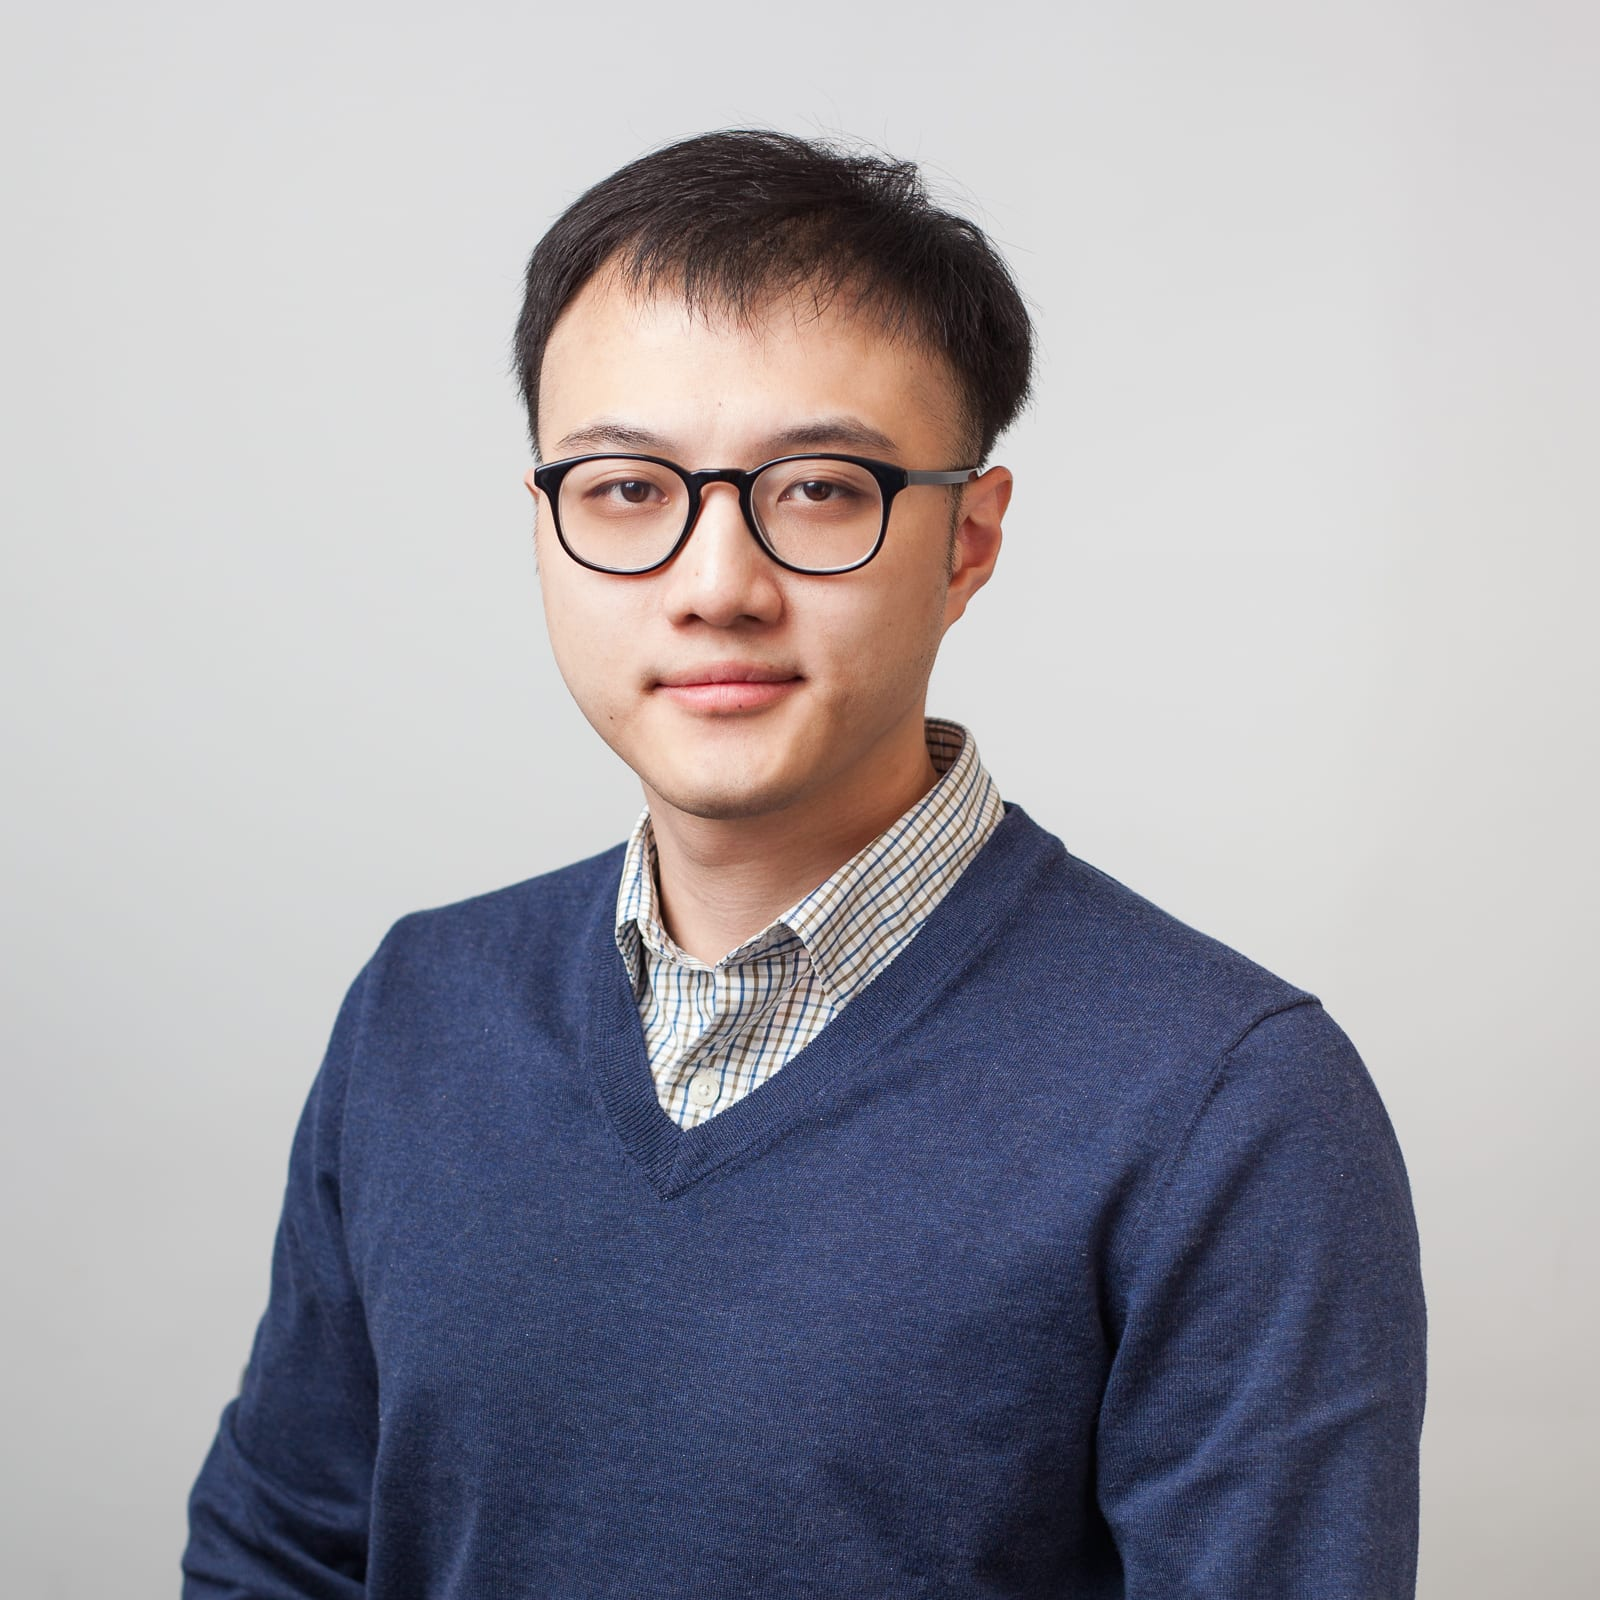 Wenchang Qian, Head of Data Science